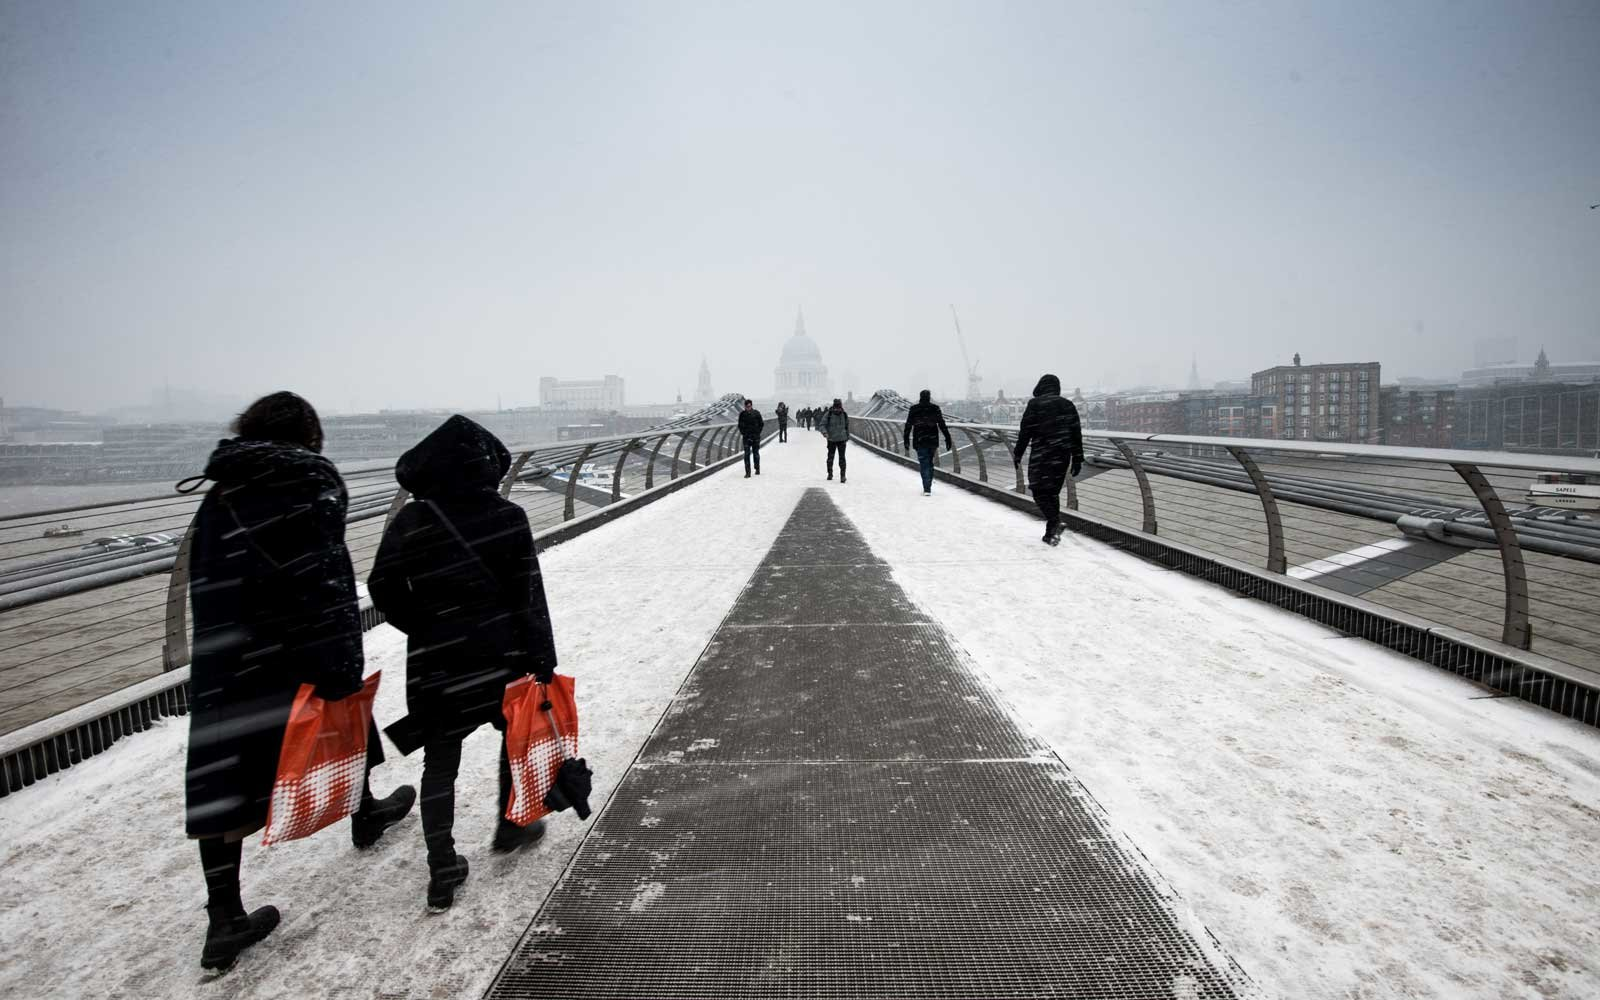 People walking on Millenium Bridge under snow on March 03, 2018 in London, England.